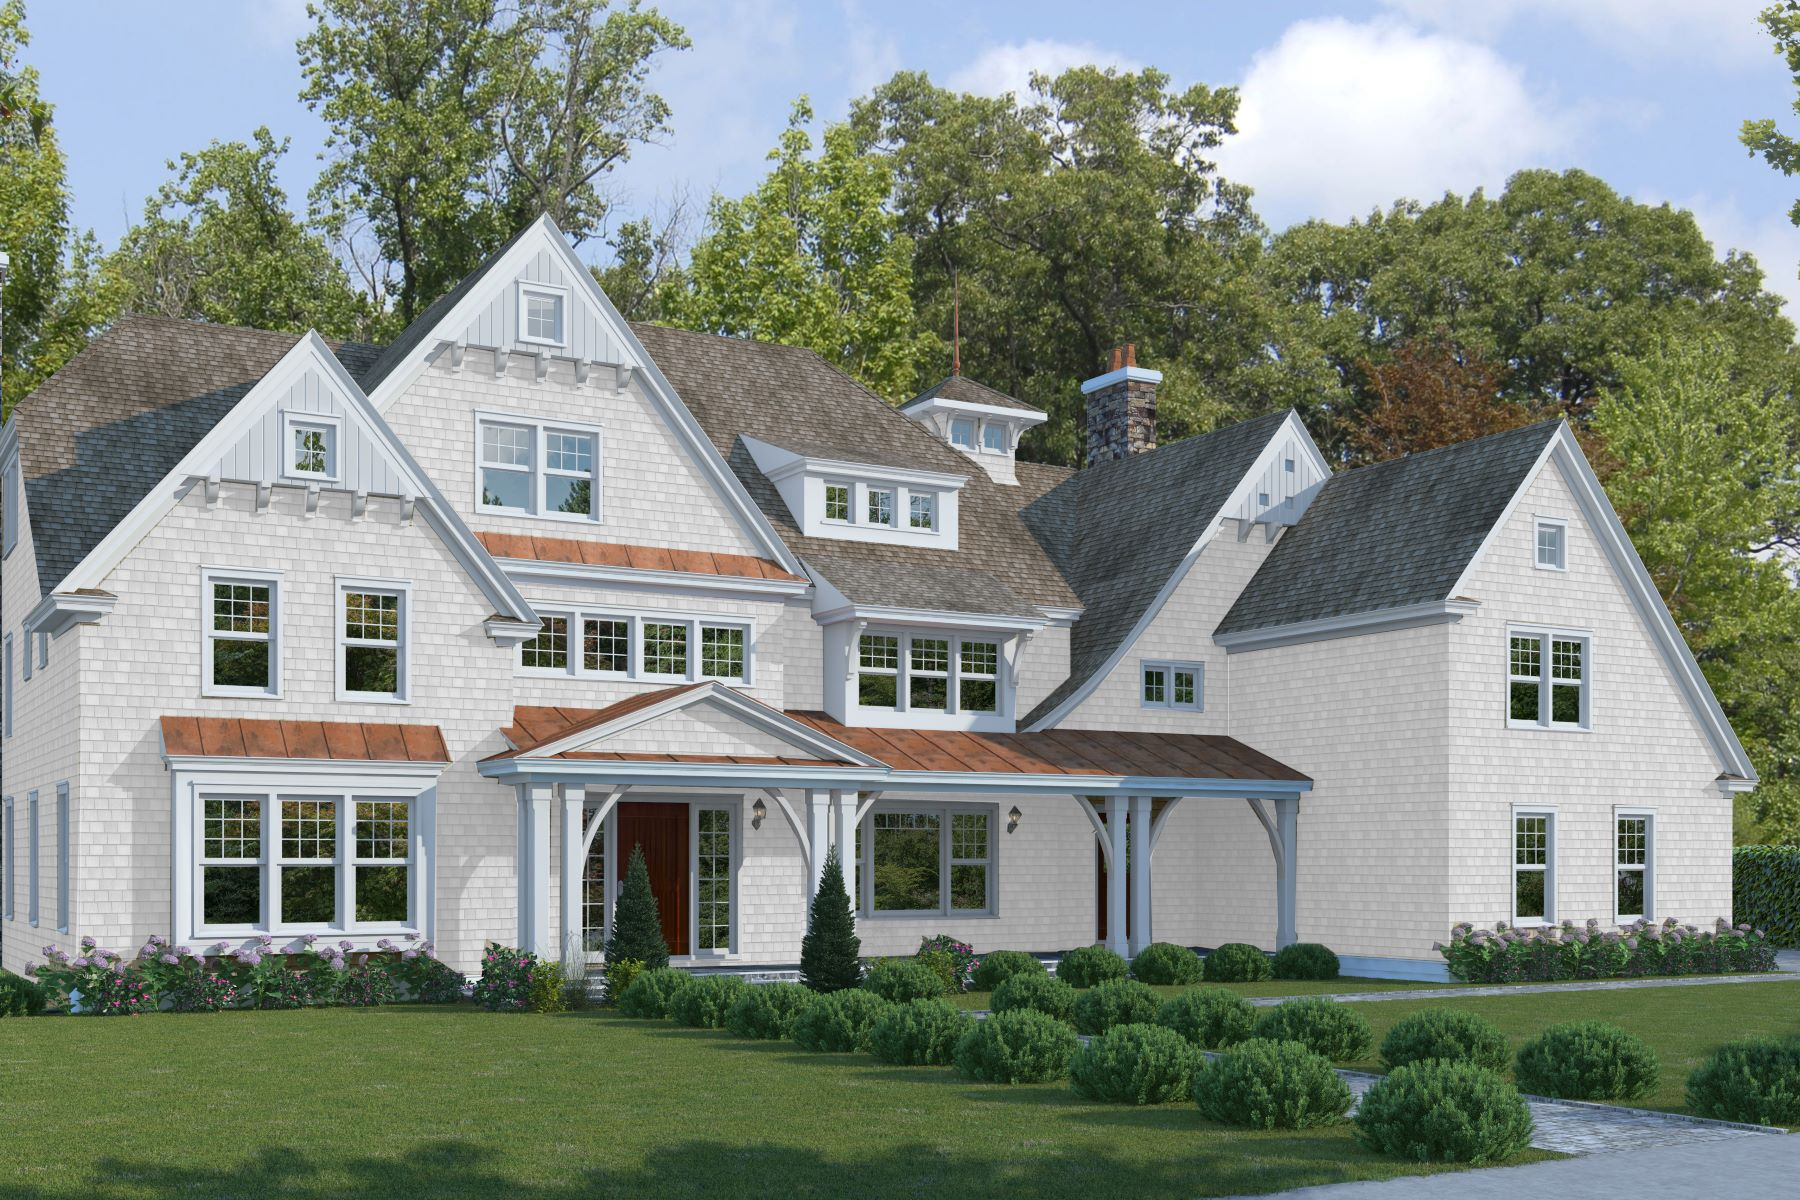 Single Family Homes for Active at Extraordinary New Construction 729 Smith Ridge Road New Canaan, Connecticut 06840 United States